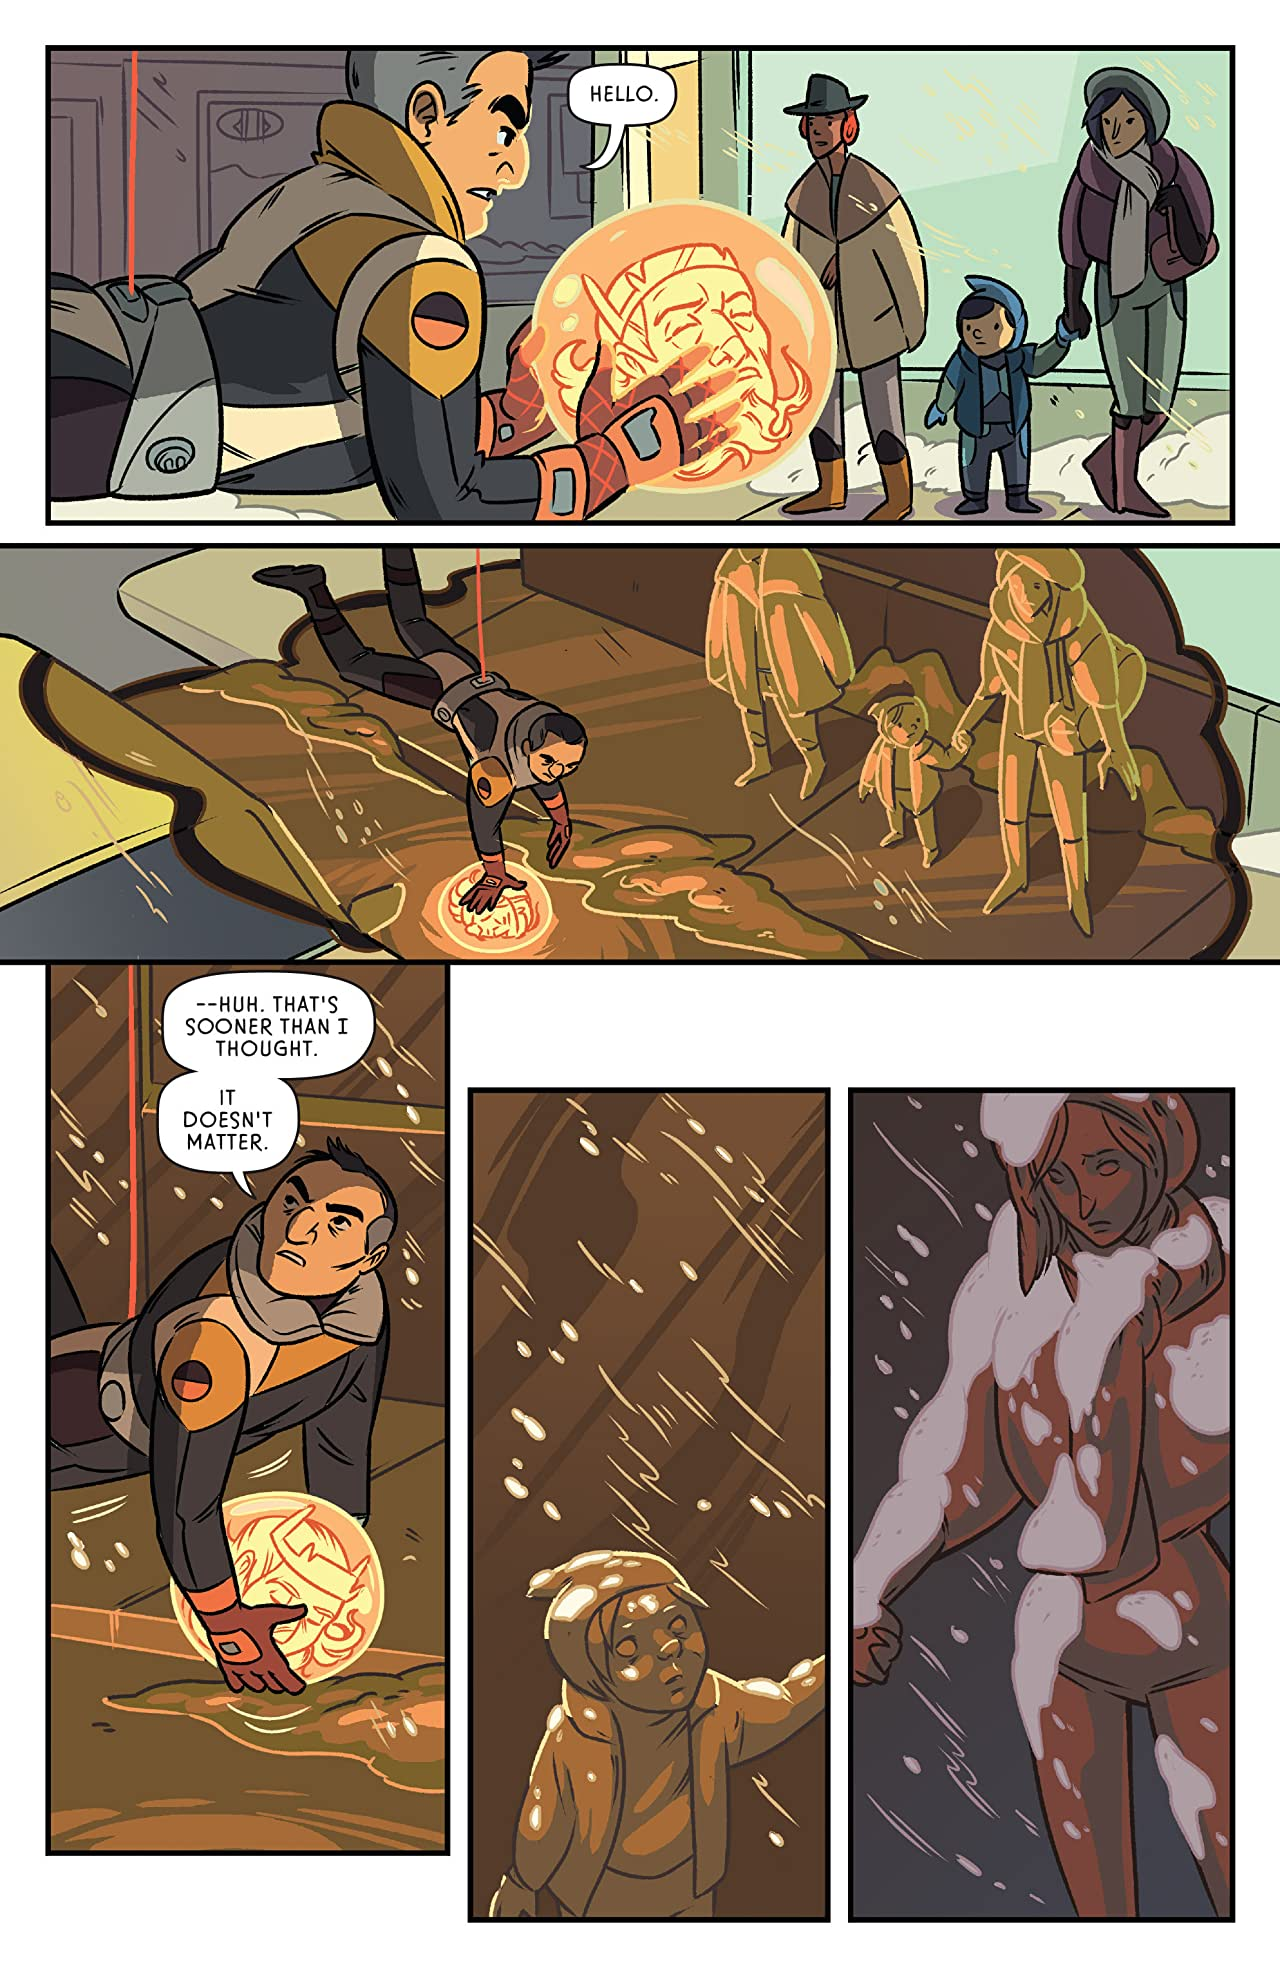 The Midas Flesh #6 (of 8)